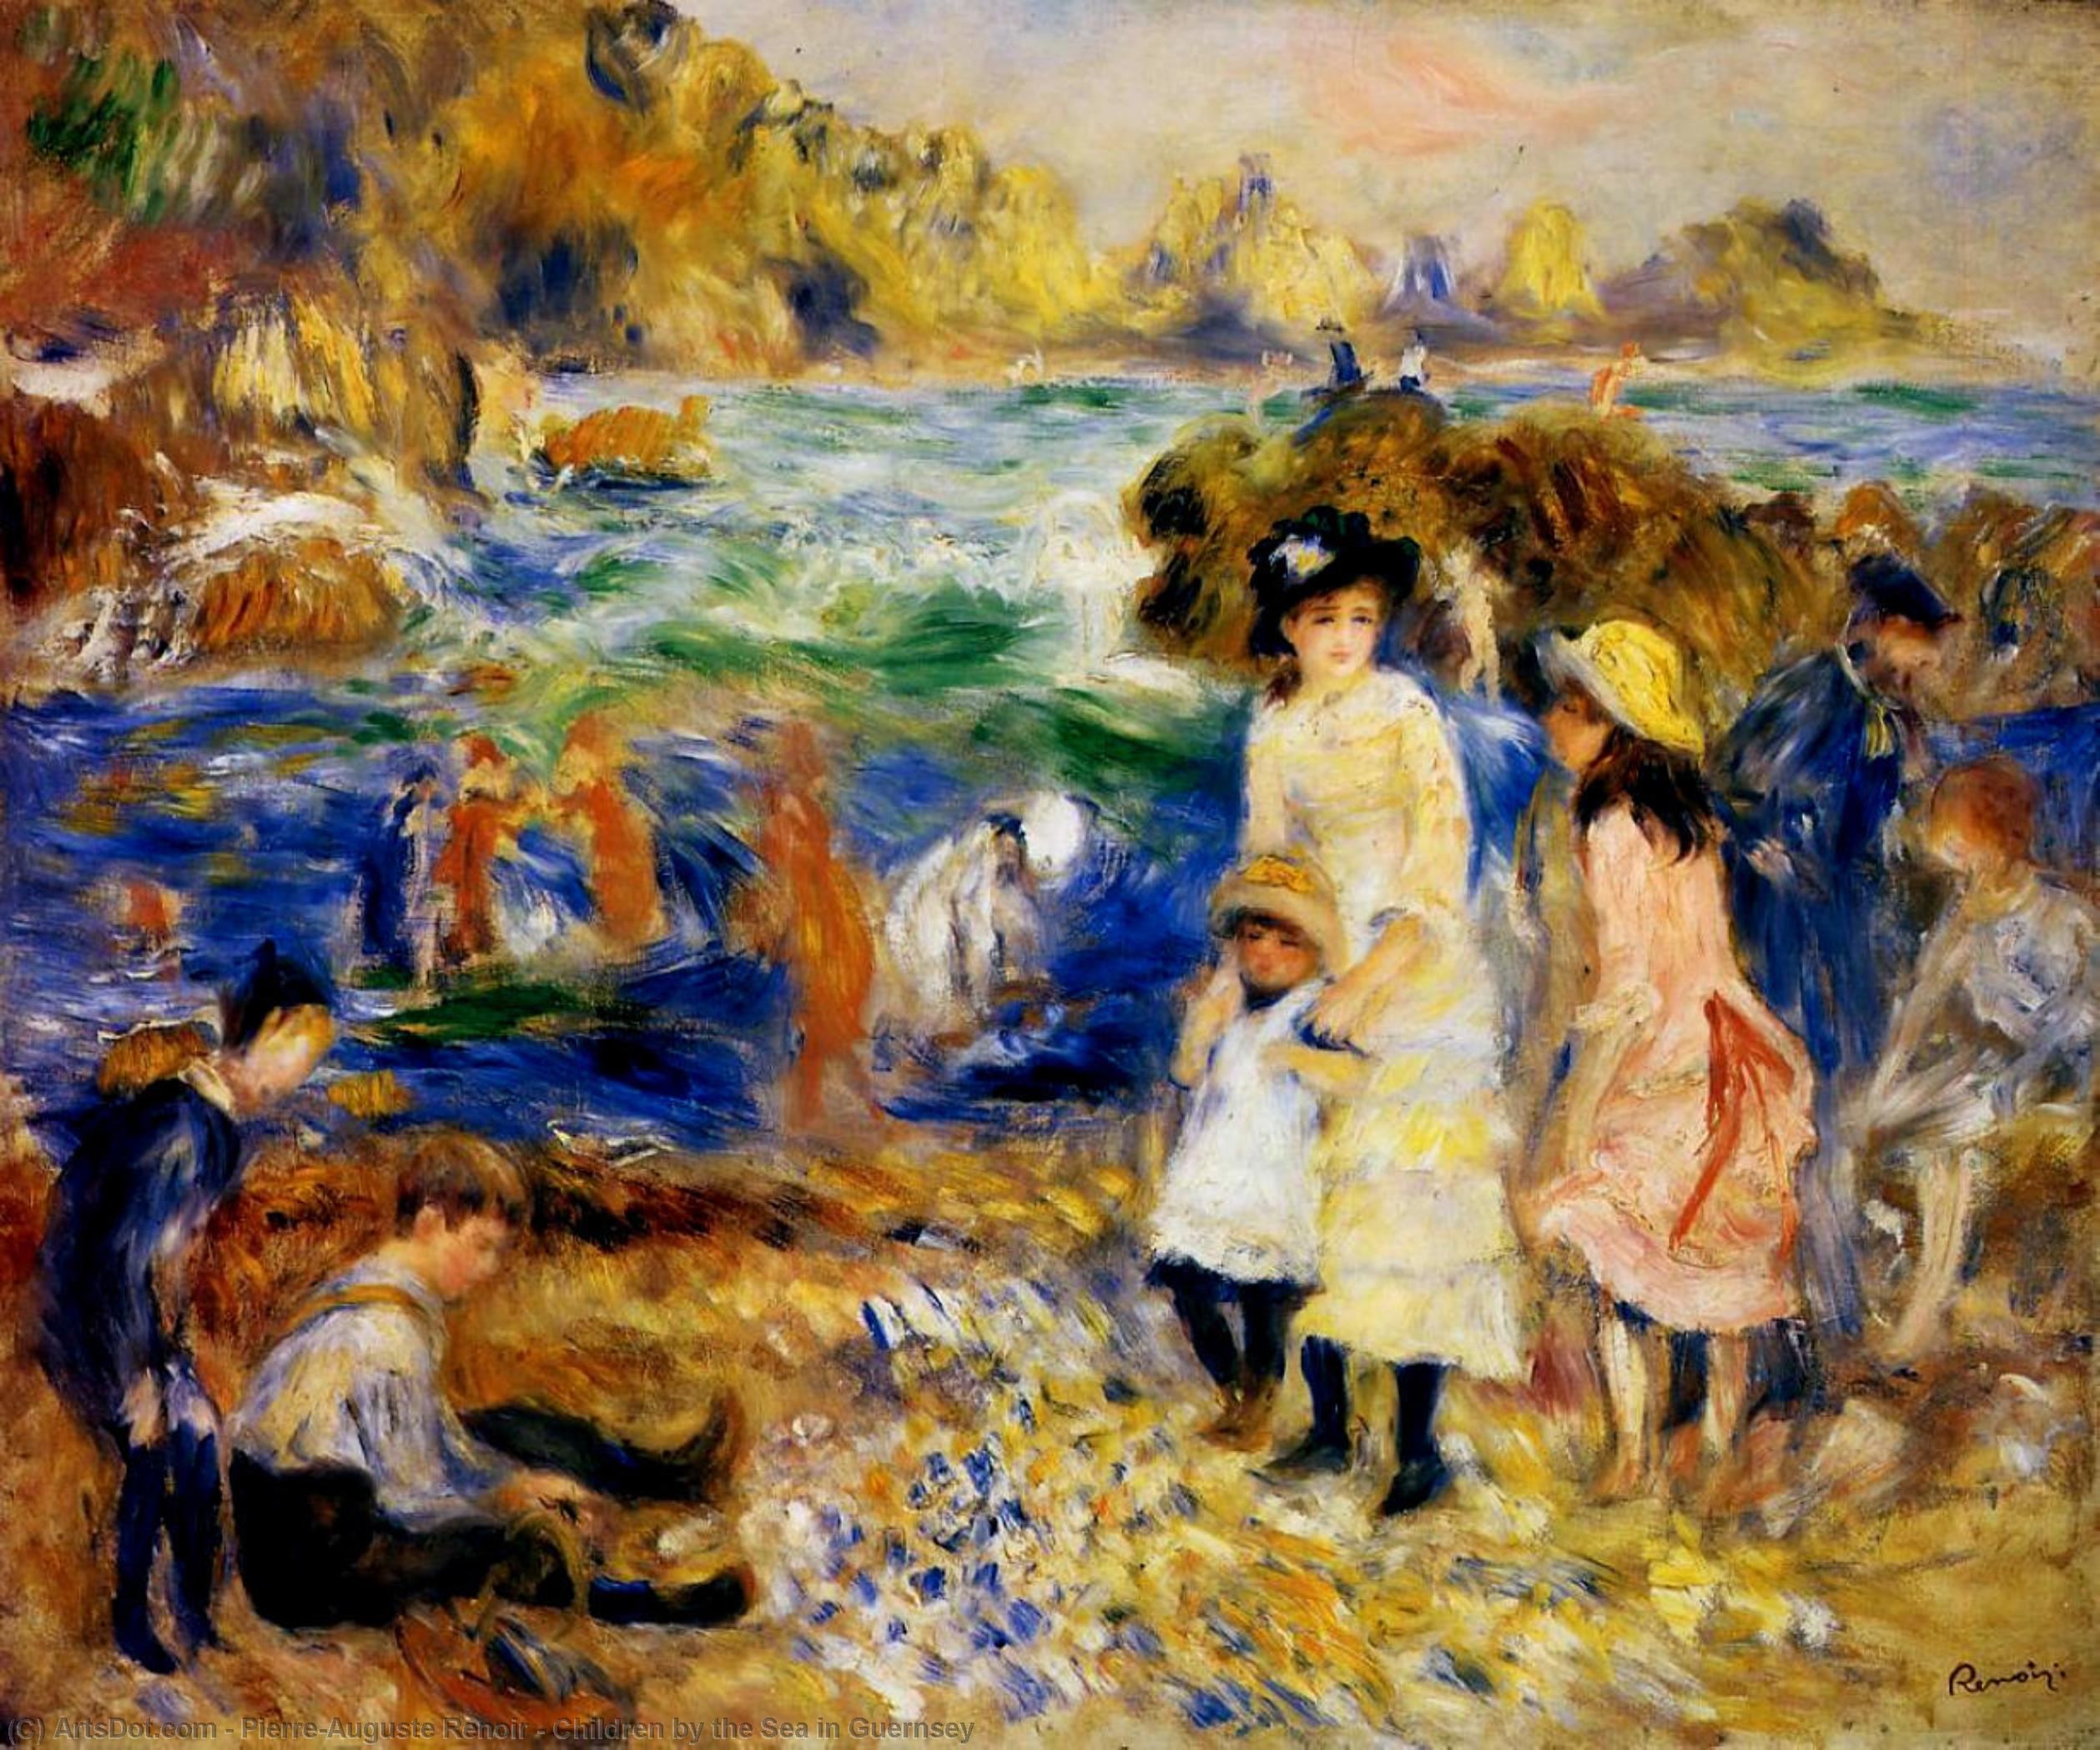 Children by the Sea in Guernsey, 1883 by Pierre-Auguste Renoir (1841-1919, France) | Museum Art Reproductions Pierre-Auguste Renoir | ArtsDot.com